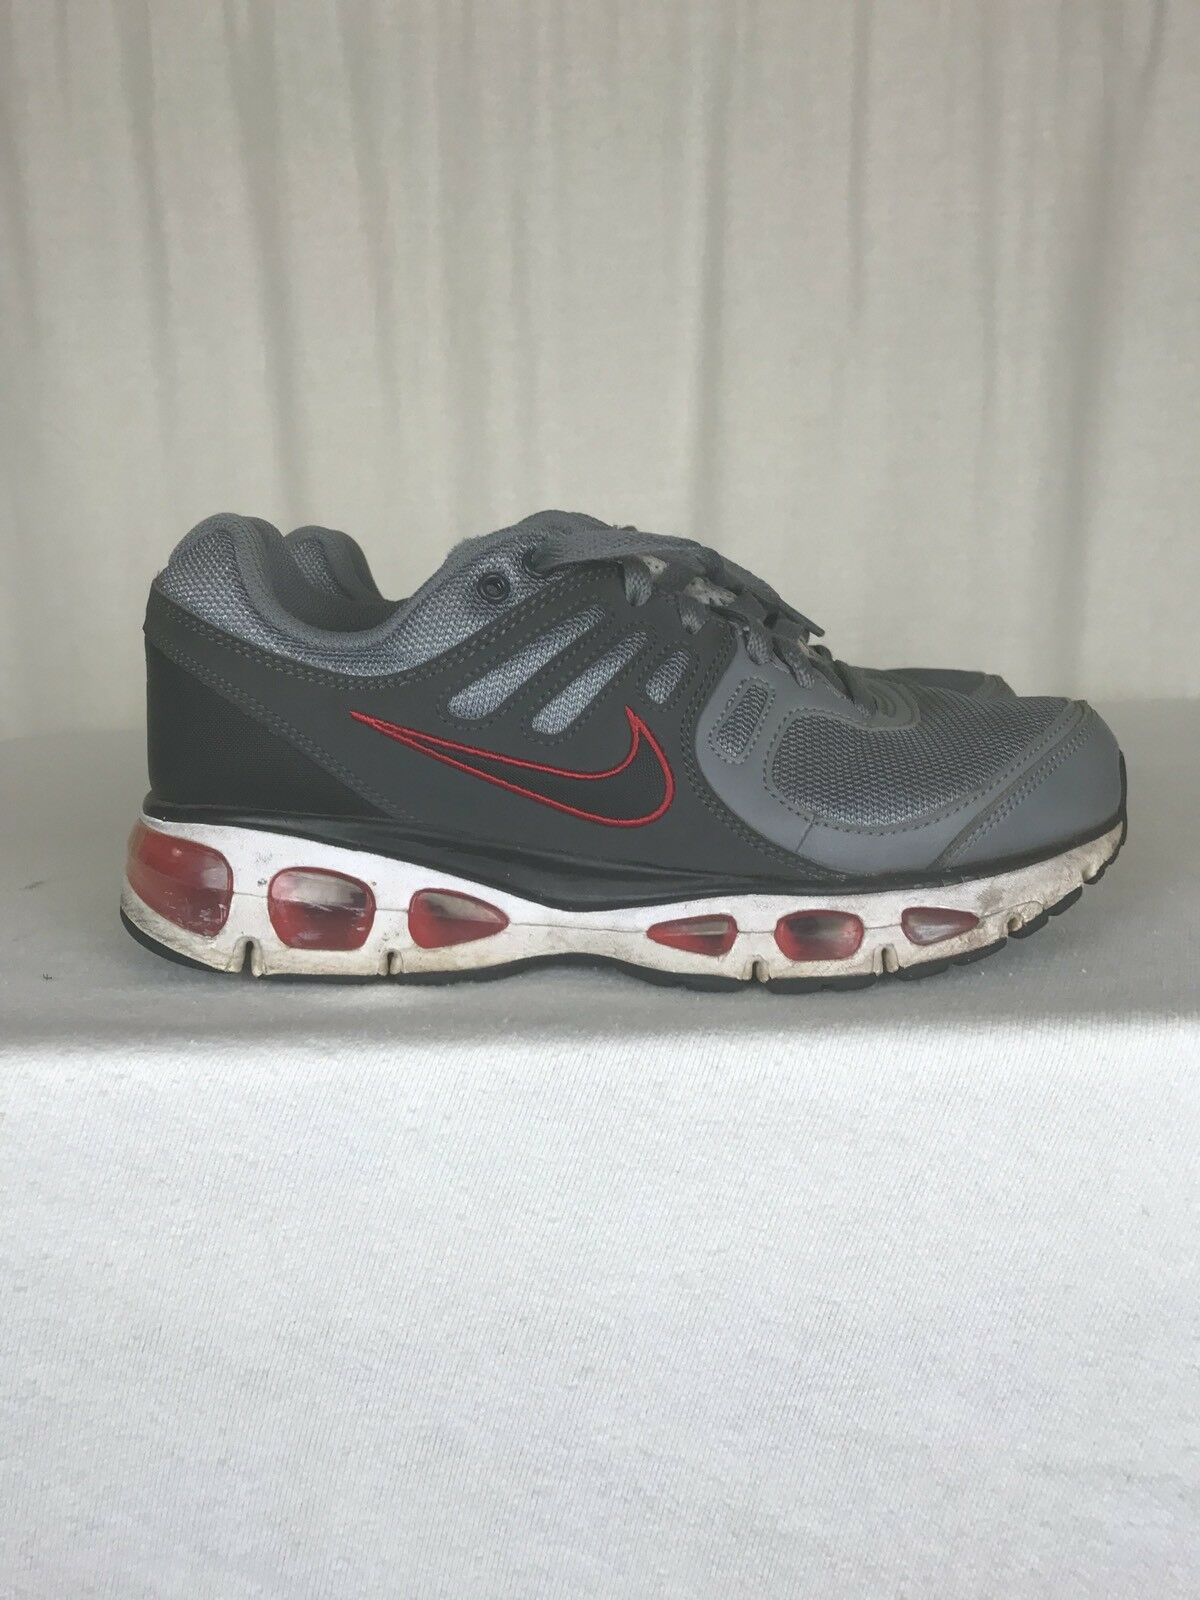 NIKE AIR MAX TAILWIND 2018 RUNNING SHOES SIZE 6 Grade School 454504-008 E